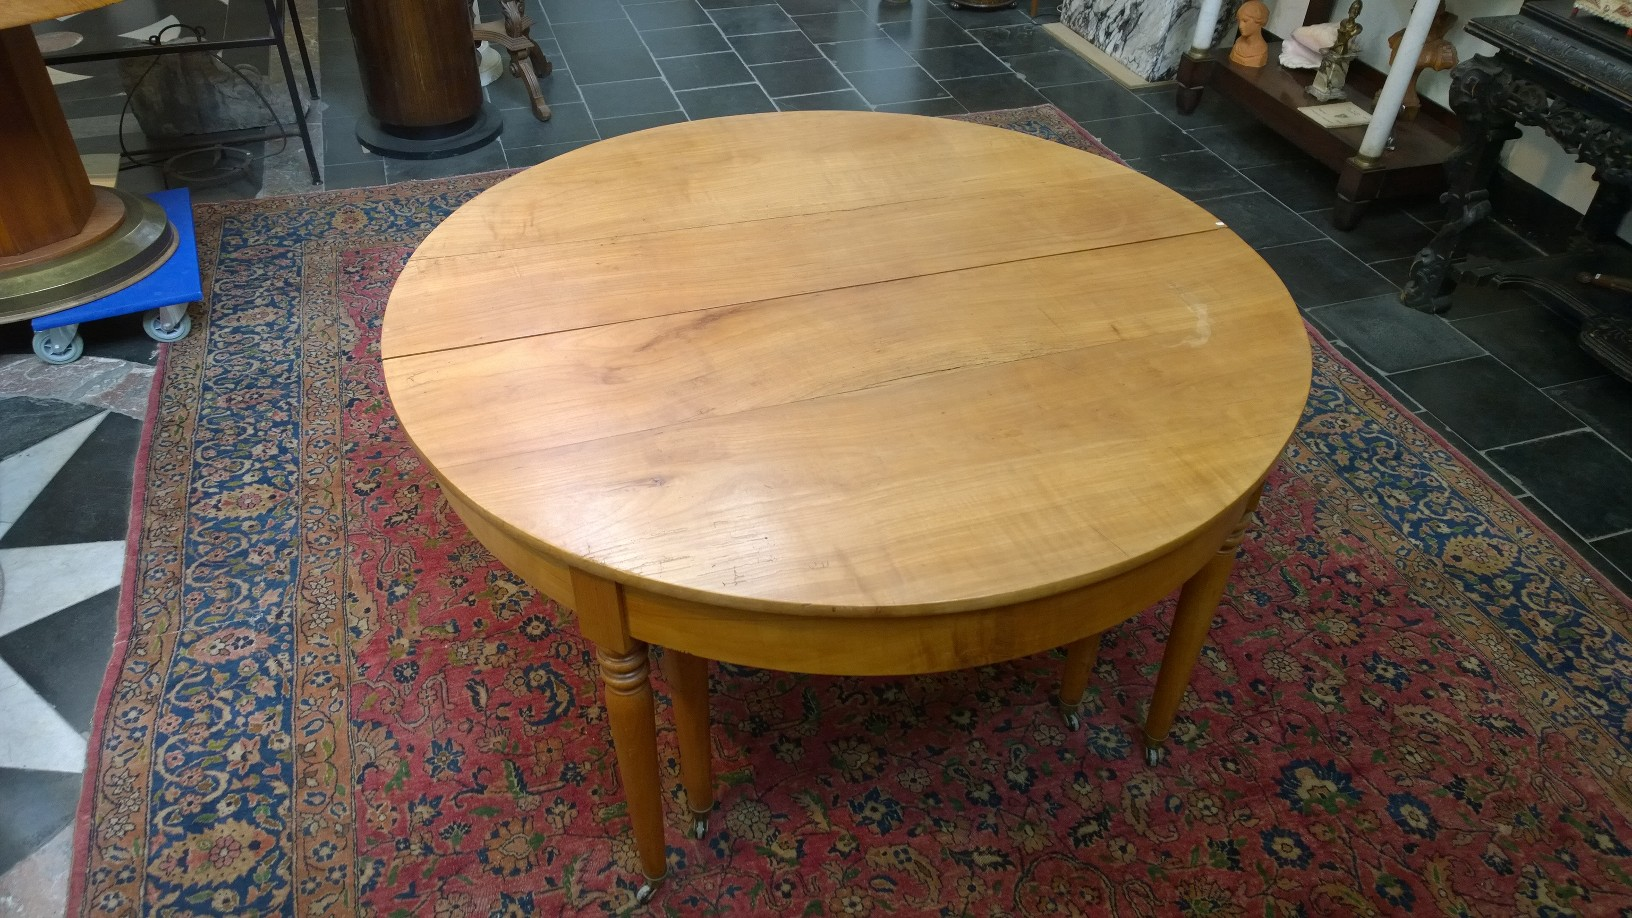 Table cherry wood